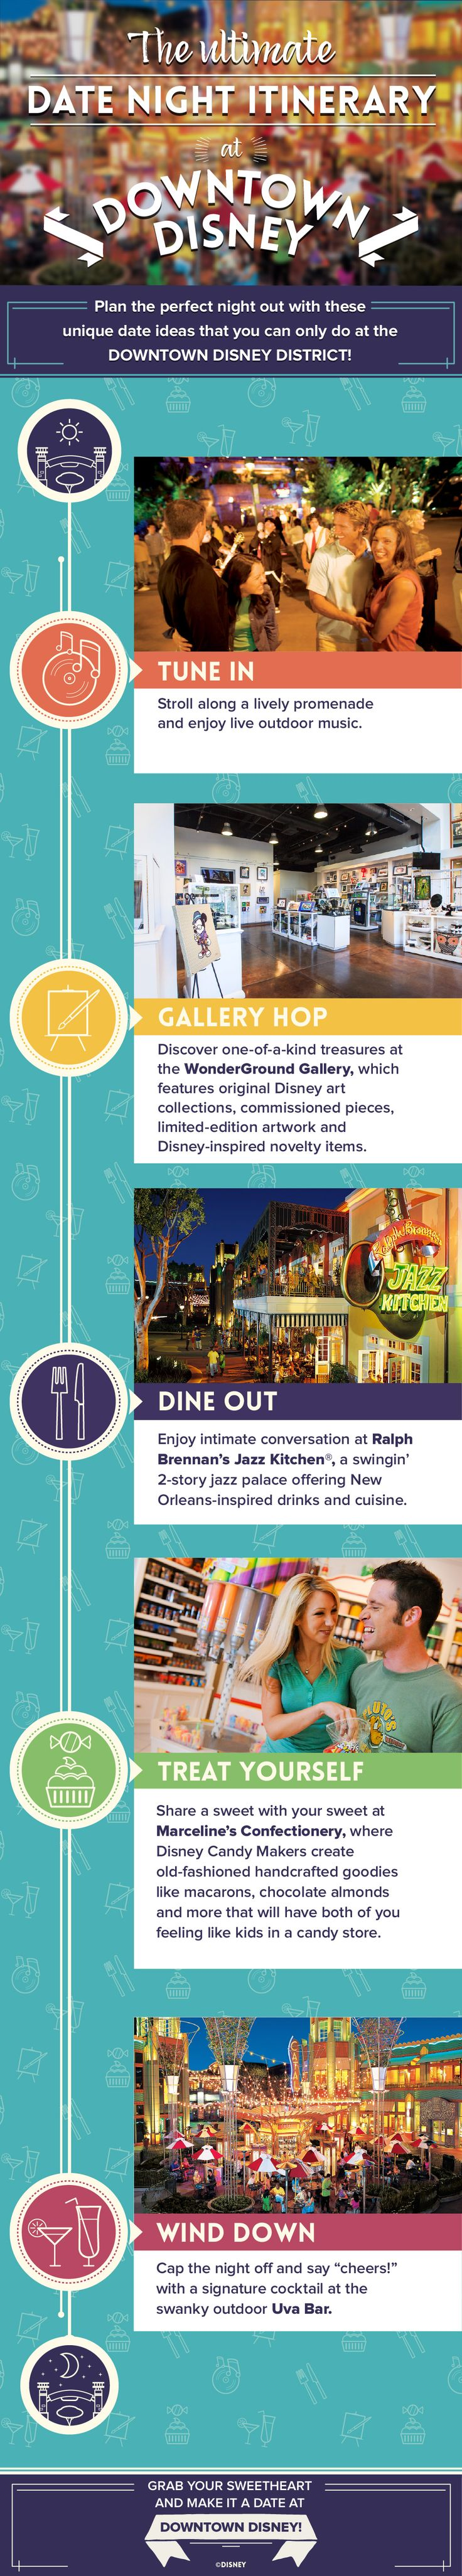 Plan the perfect date night with your sweetheart at the Downtown Disney District in Anaheim with this itinerary!